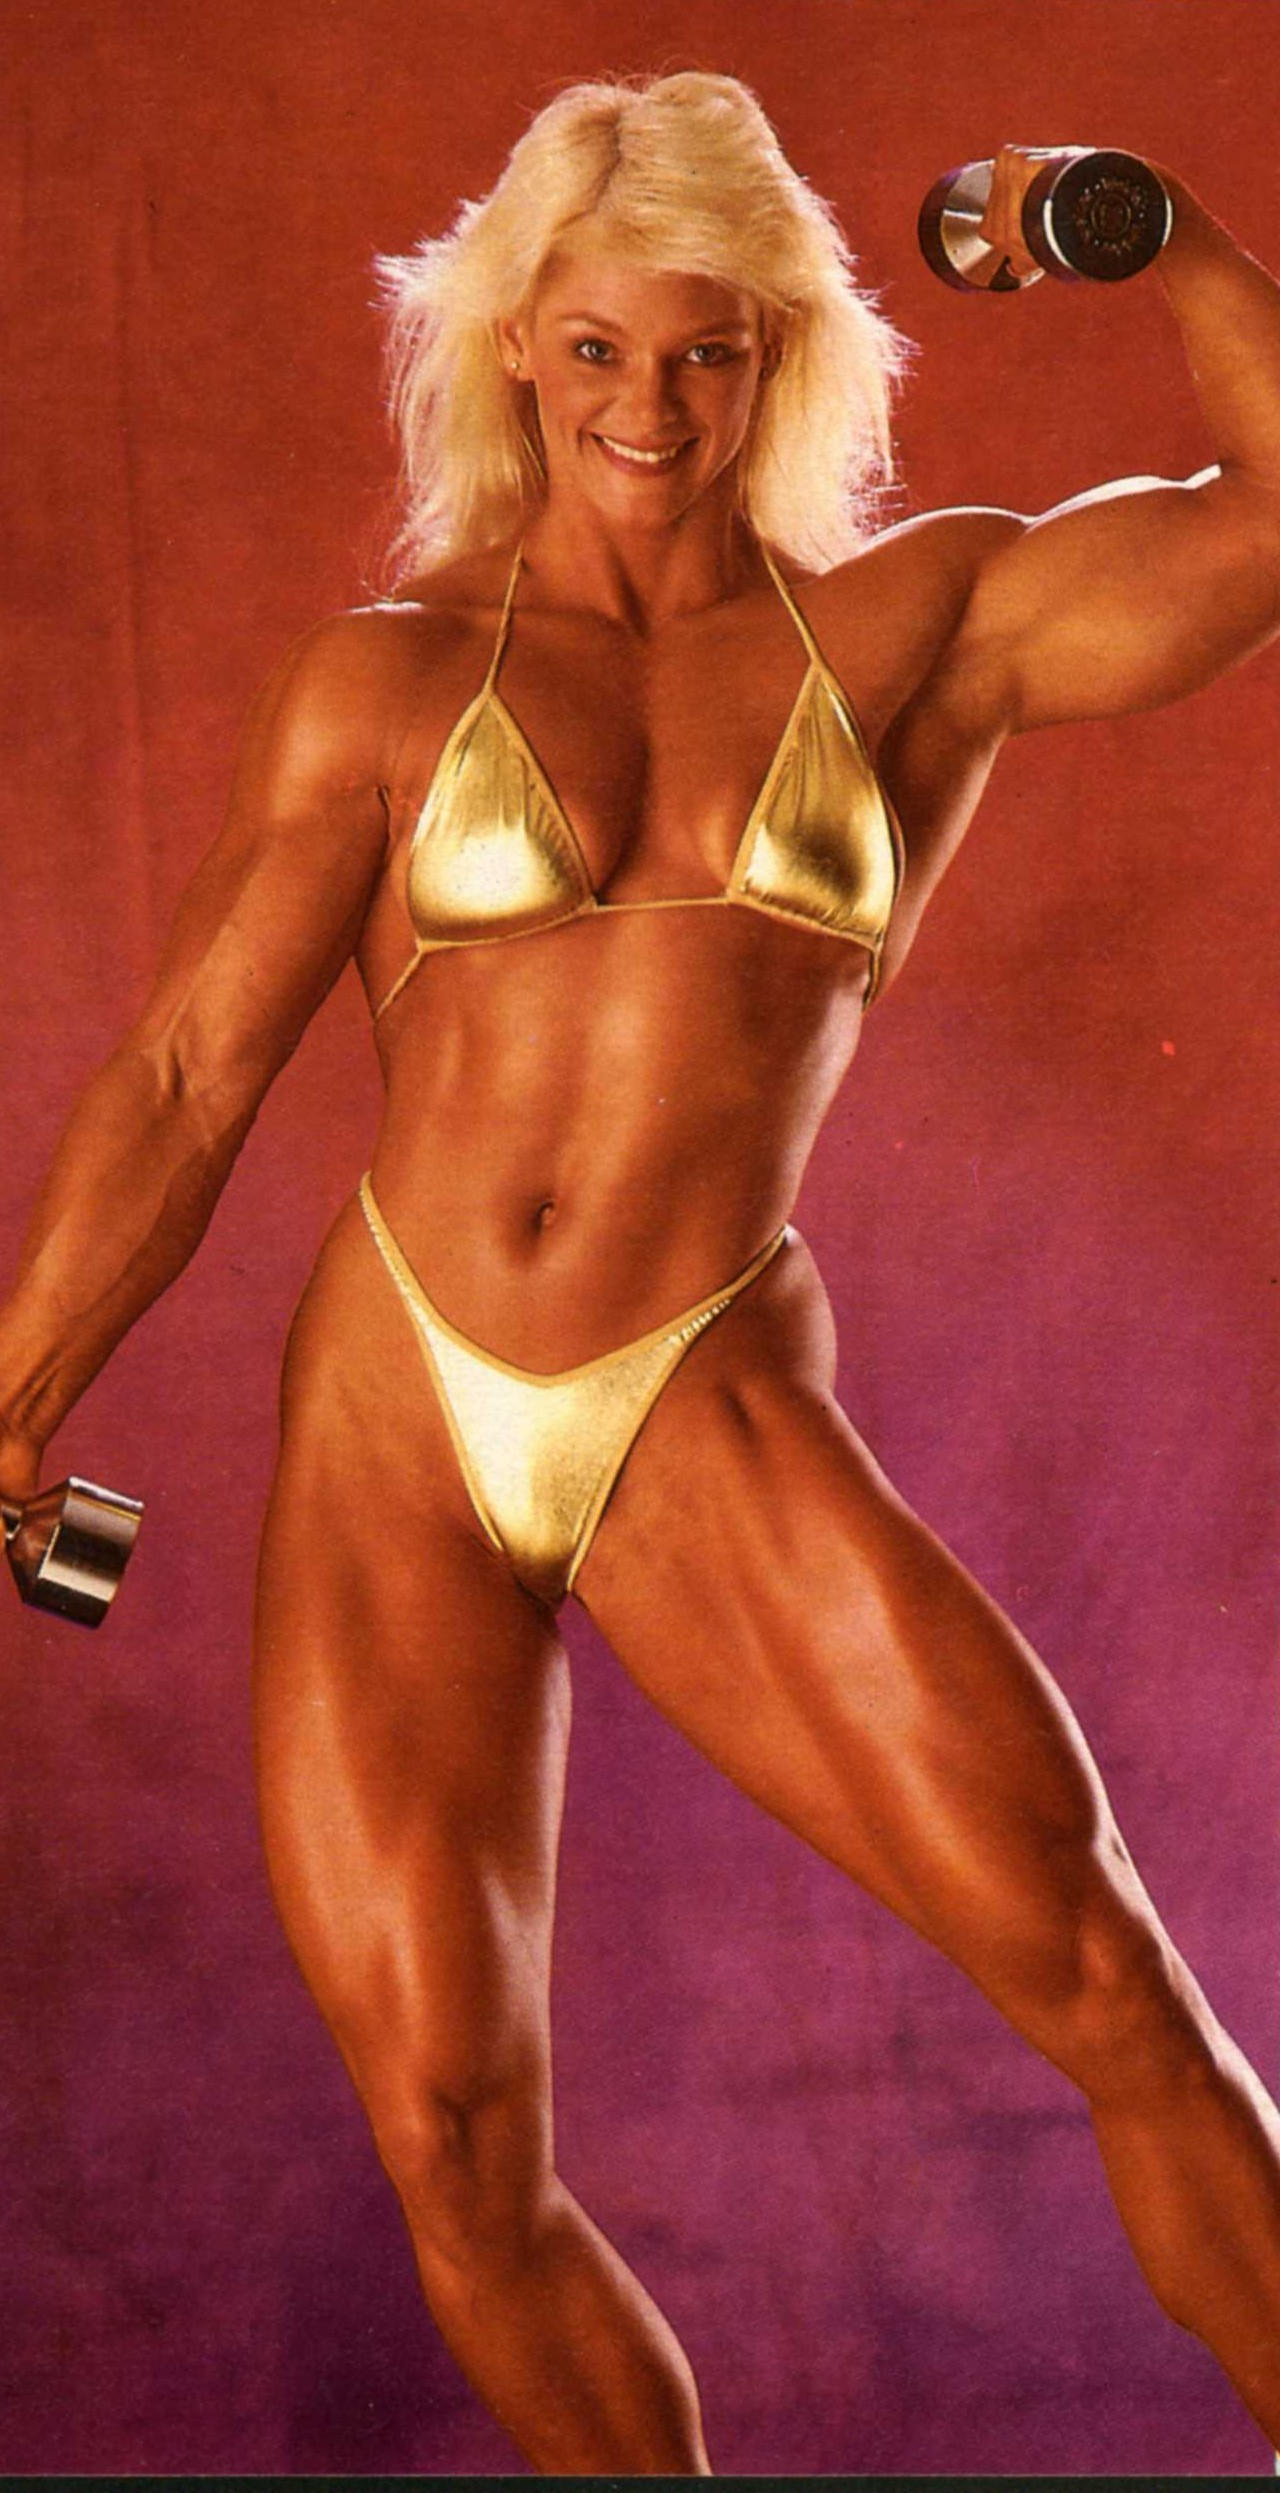 American Gladiators Naked american gladiator lace penthouse centerfold gallery-528